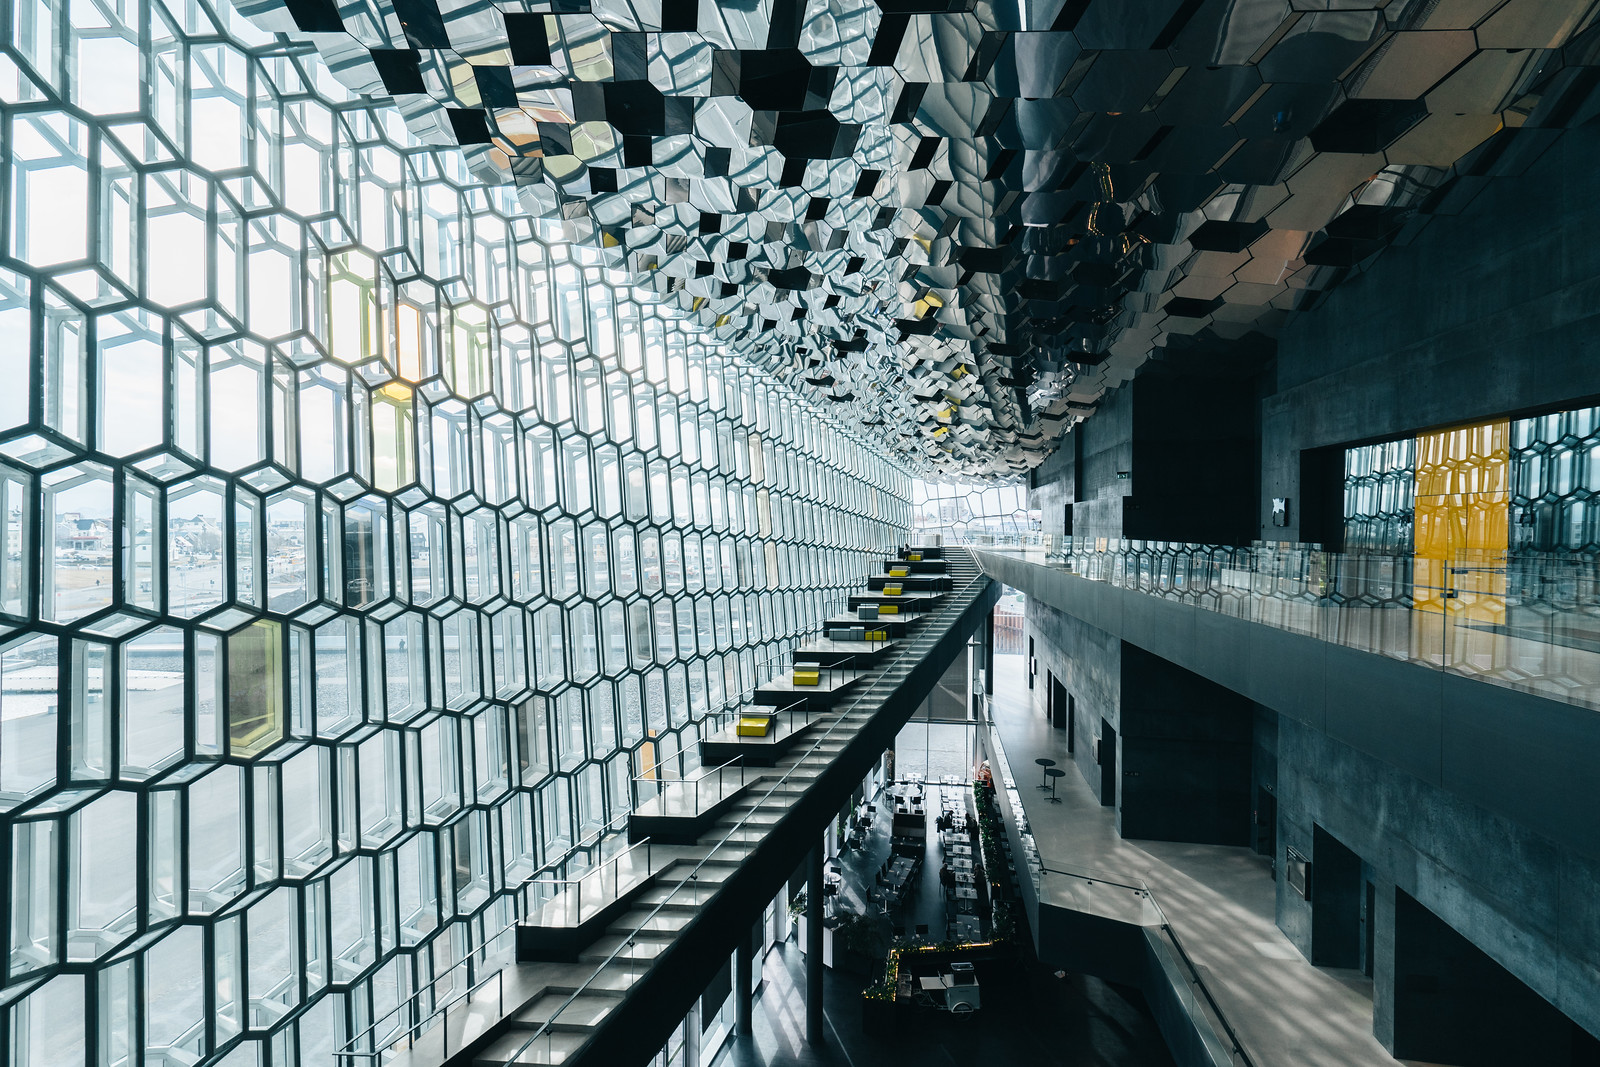 Inside Harpa, a concert hall and conference centre in Reykjavík [1600×1066] Photo by Wilson Lee